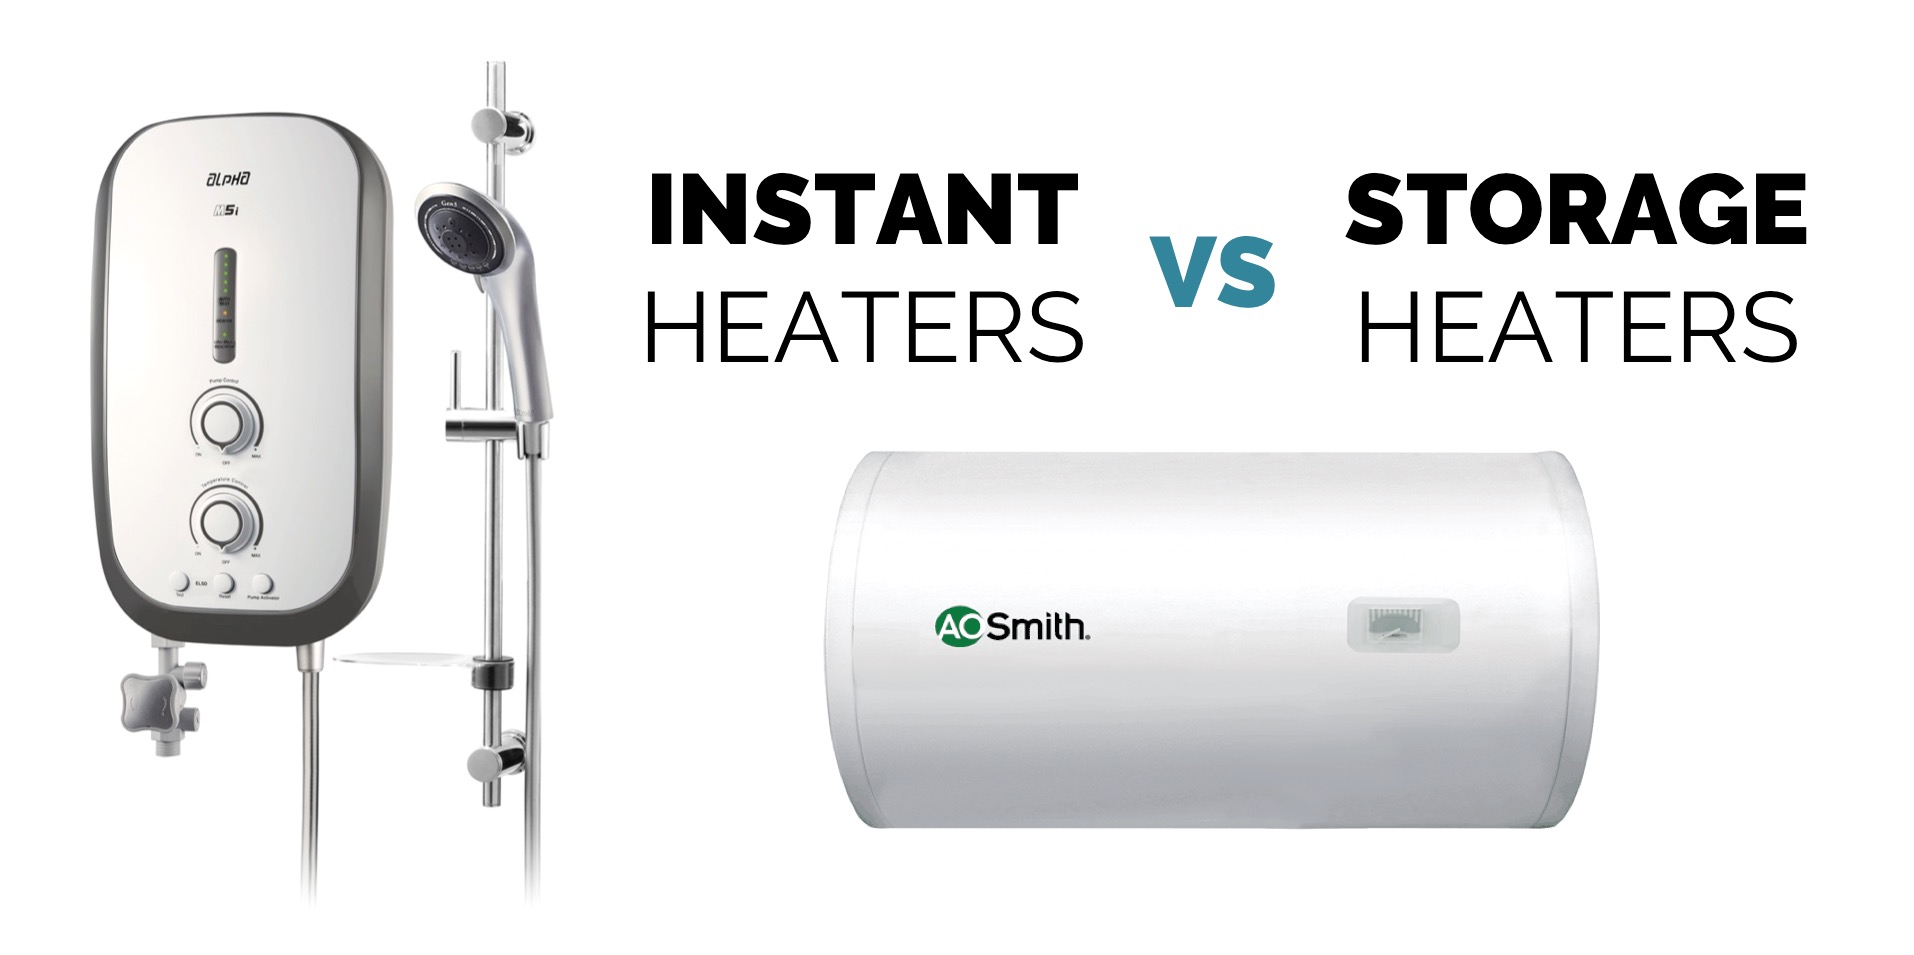 Instant Water Heater Heat : Instant vs storage water heaters in singapore aos bath